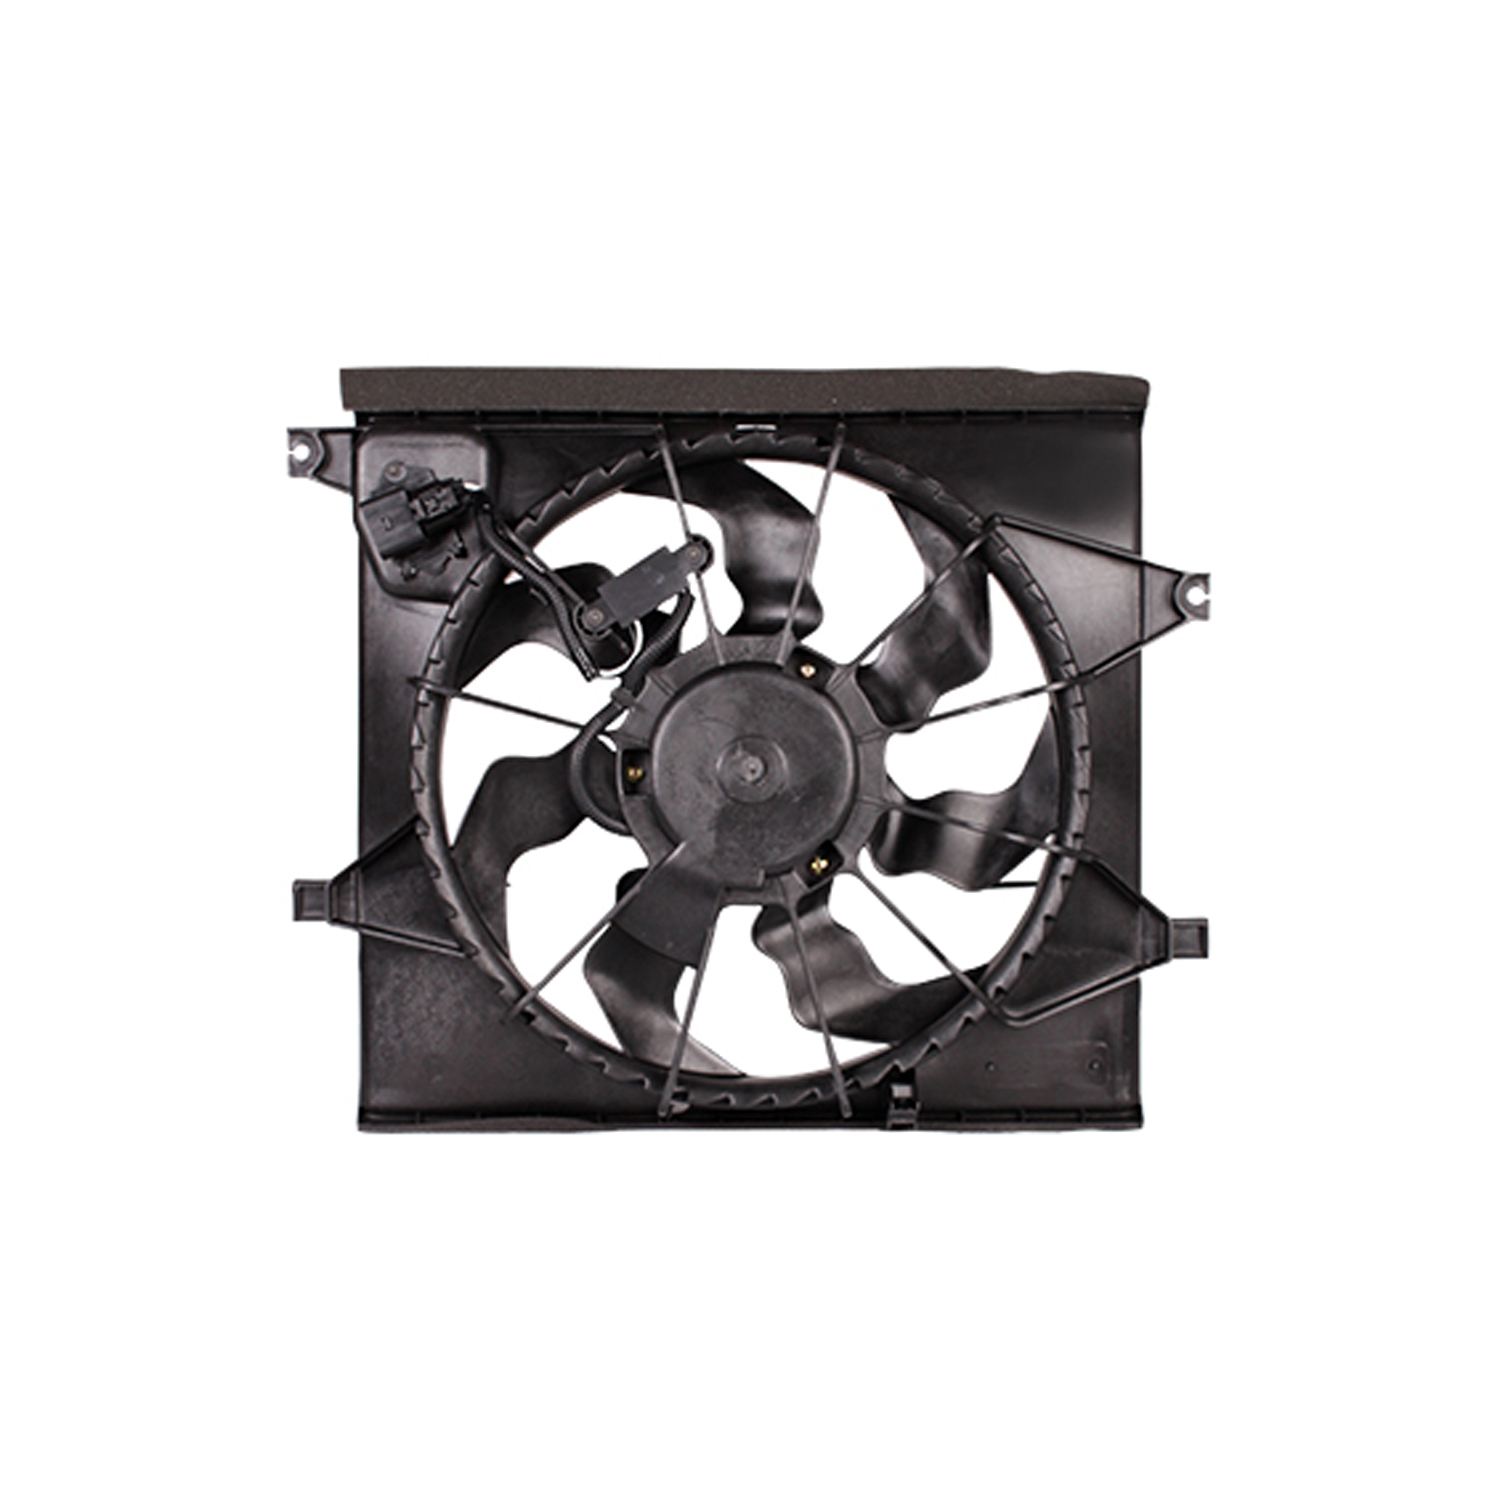 CPP Replacement Engine Cooling Fan Assembly KI3115128 for 2010-2011 Kia Soul